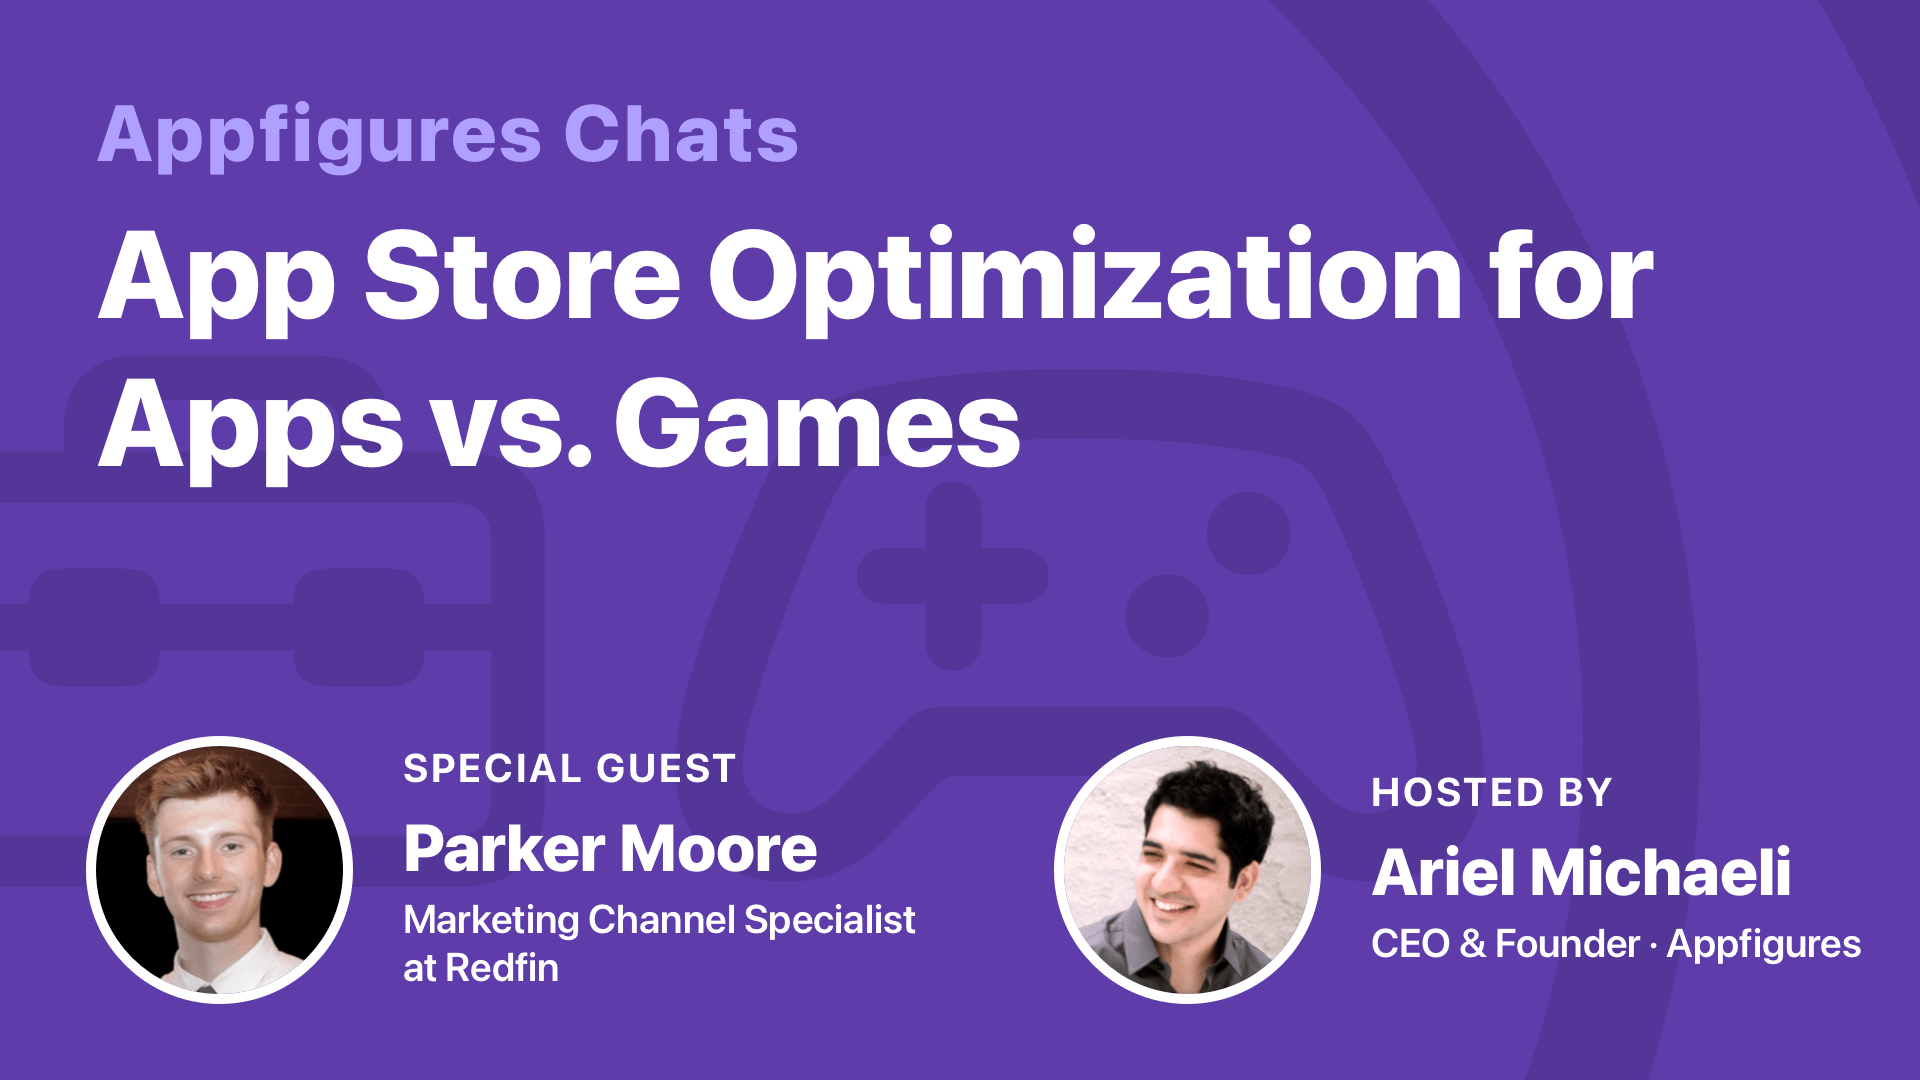 �� AF Chats: The Differences (and Similiarities) in ASO for Apps vs. Games w/ Parker Moore